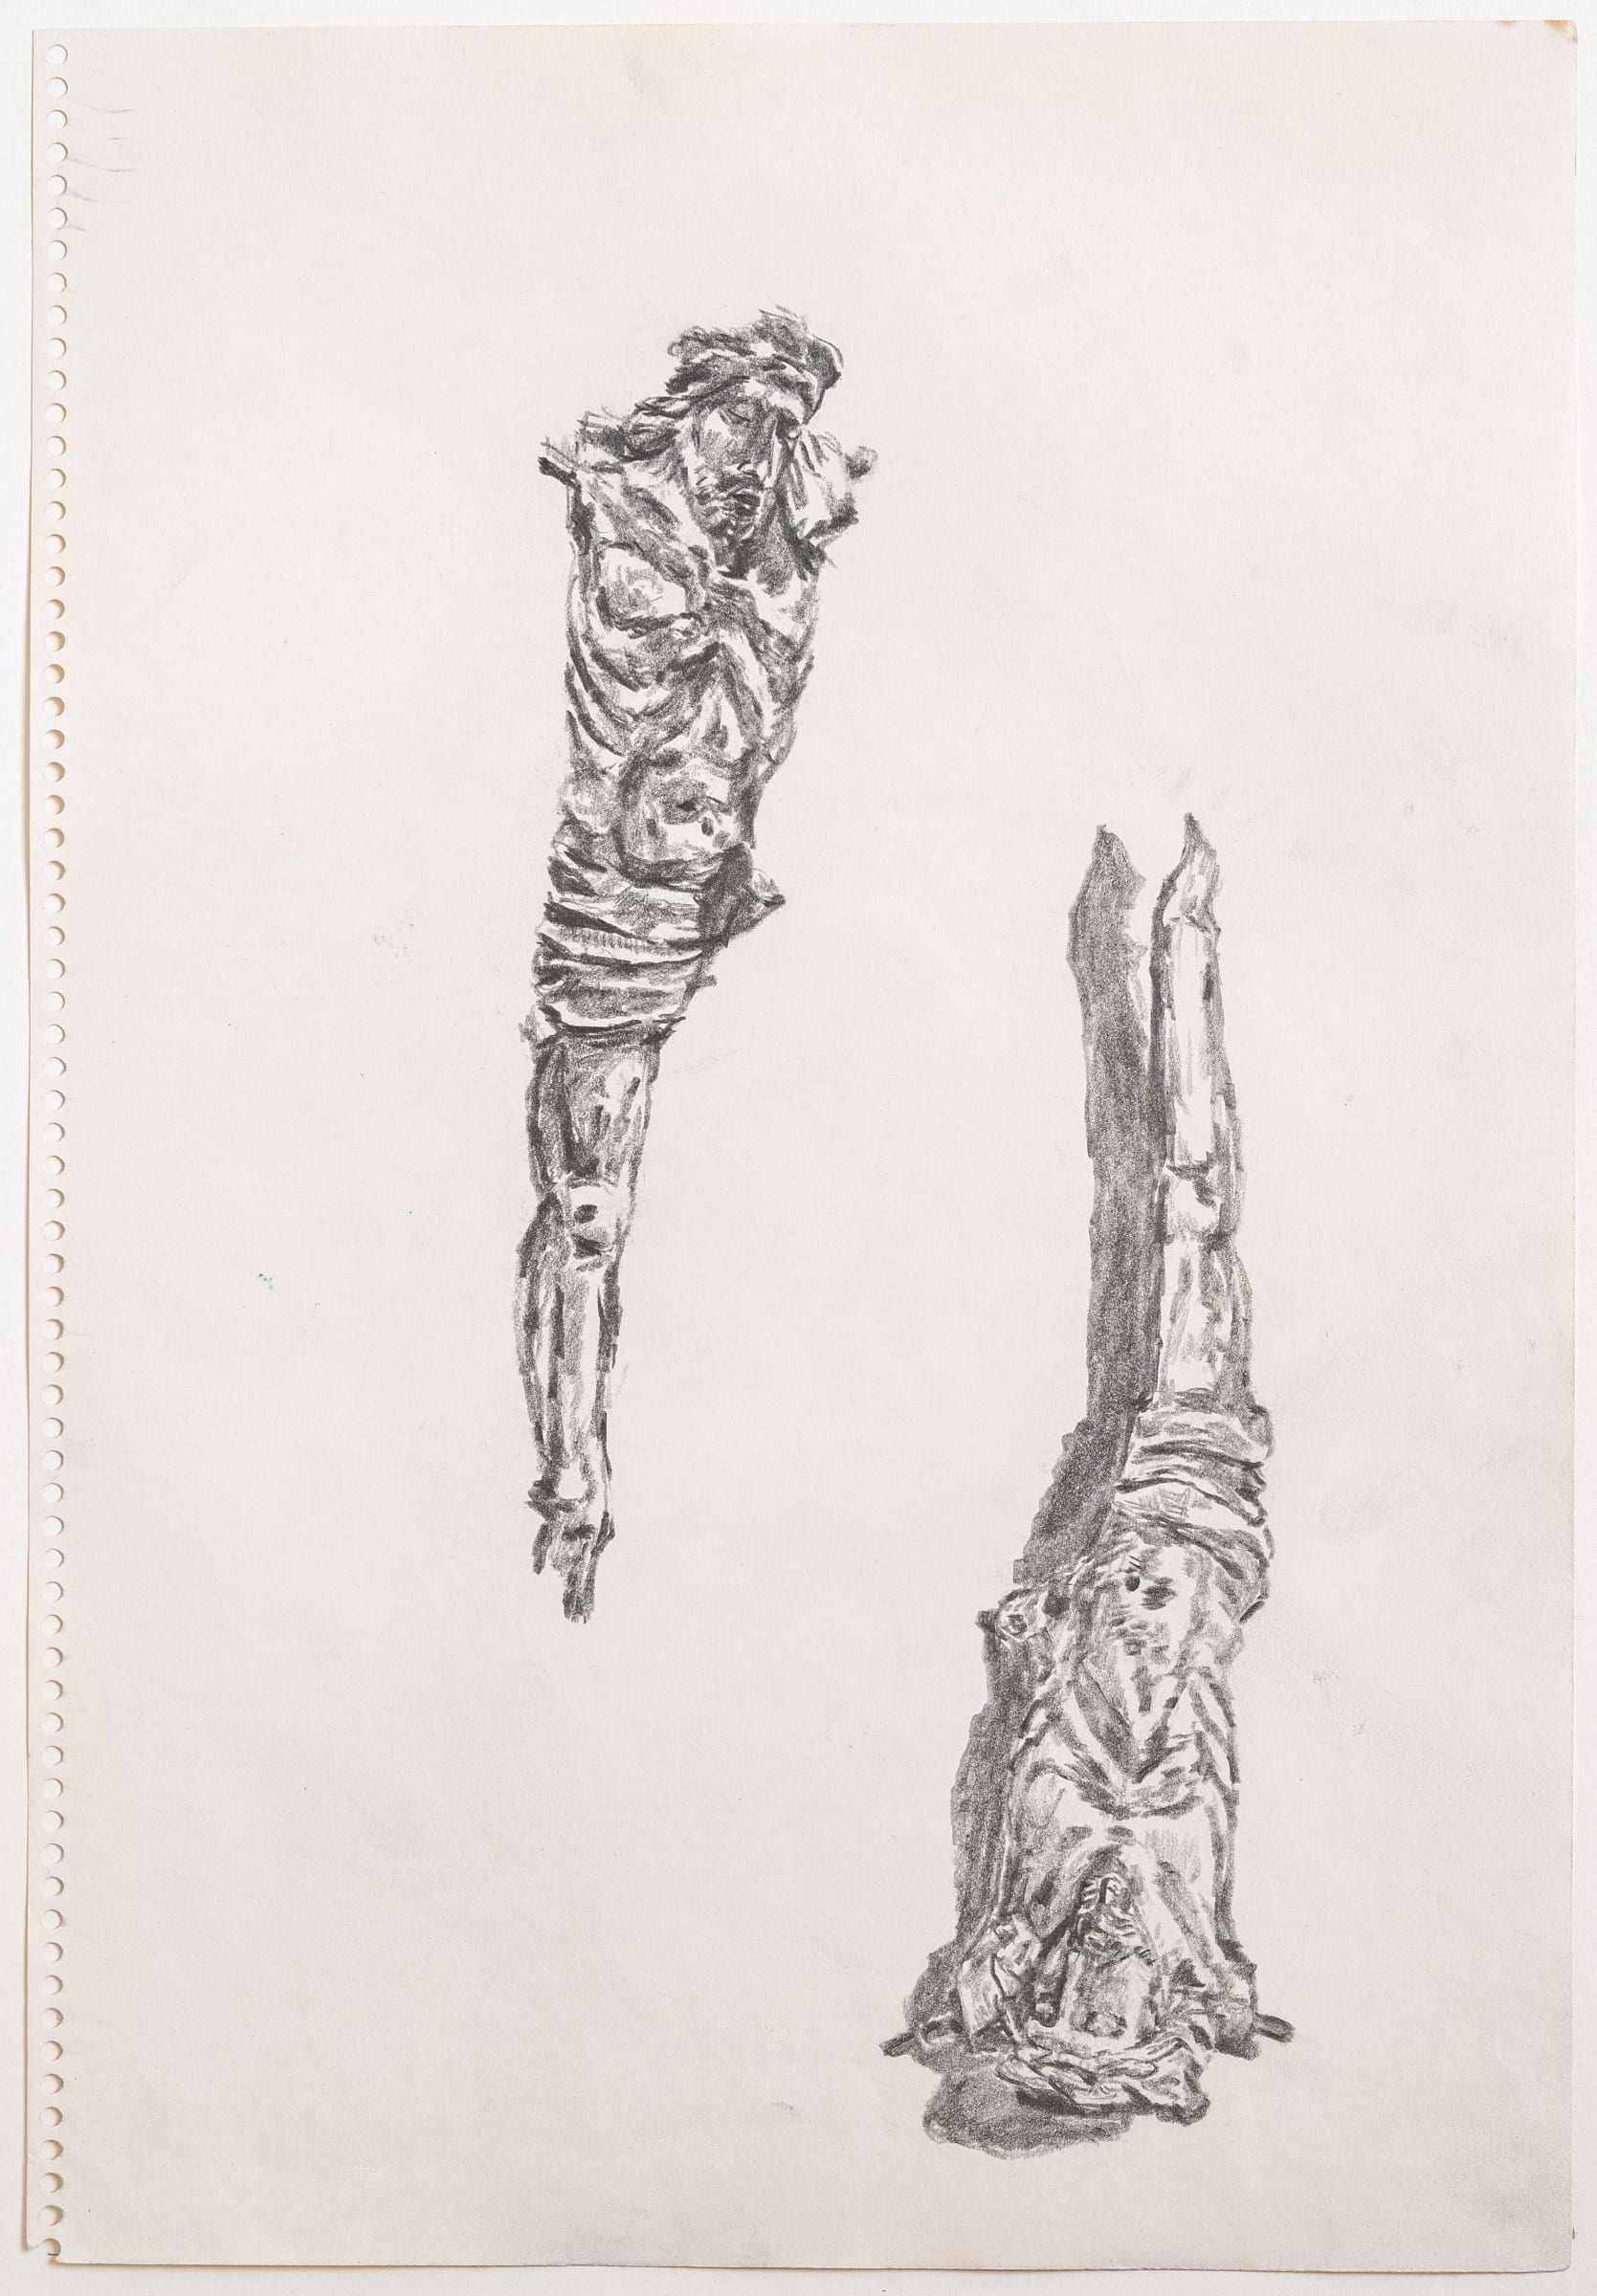 """<span class=""""link fancybox-details-link""""><a href=""""/artists/266-paul-thek/works/11205-paul-thek-untitled-crucifixions-1970/"""">View Detail Page</a></span><div class=""""artist""""><span class=""""artist""""><strong>PAUL THEK</strong></span></div><div class=""""title""""><em>Untitled (Crucifixions)</em>, 1970</div><div class=""""medium"""">Pencil on paper</div><div class=""""dimensions"""">34 x 23.5 cm<br /> 13 3/8 x 9 1/4 x inches</div>"""